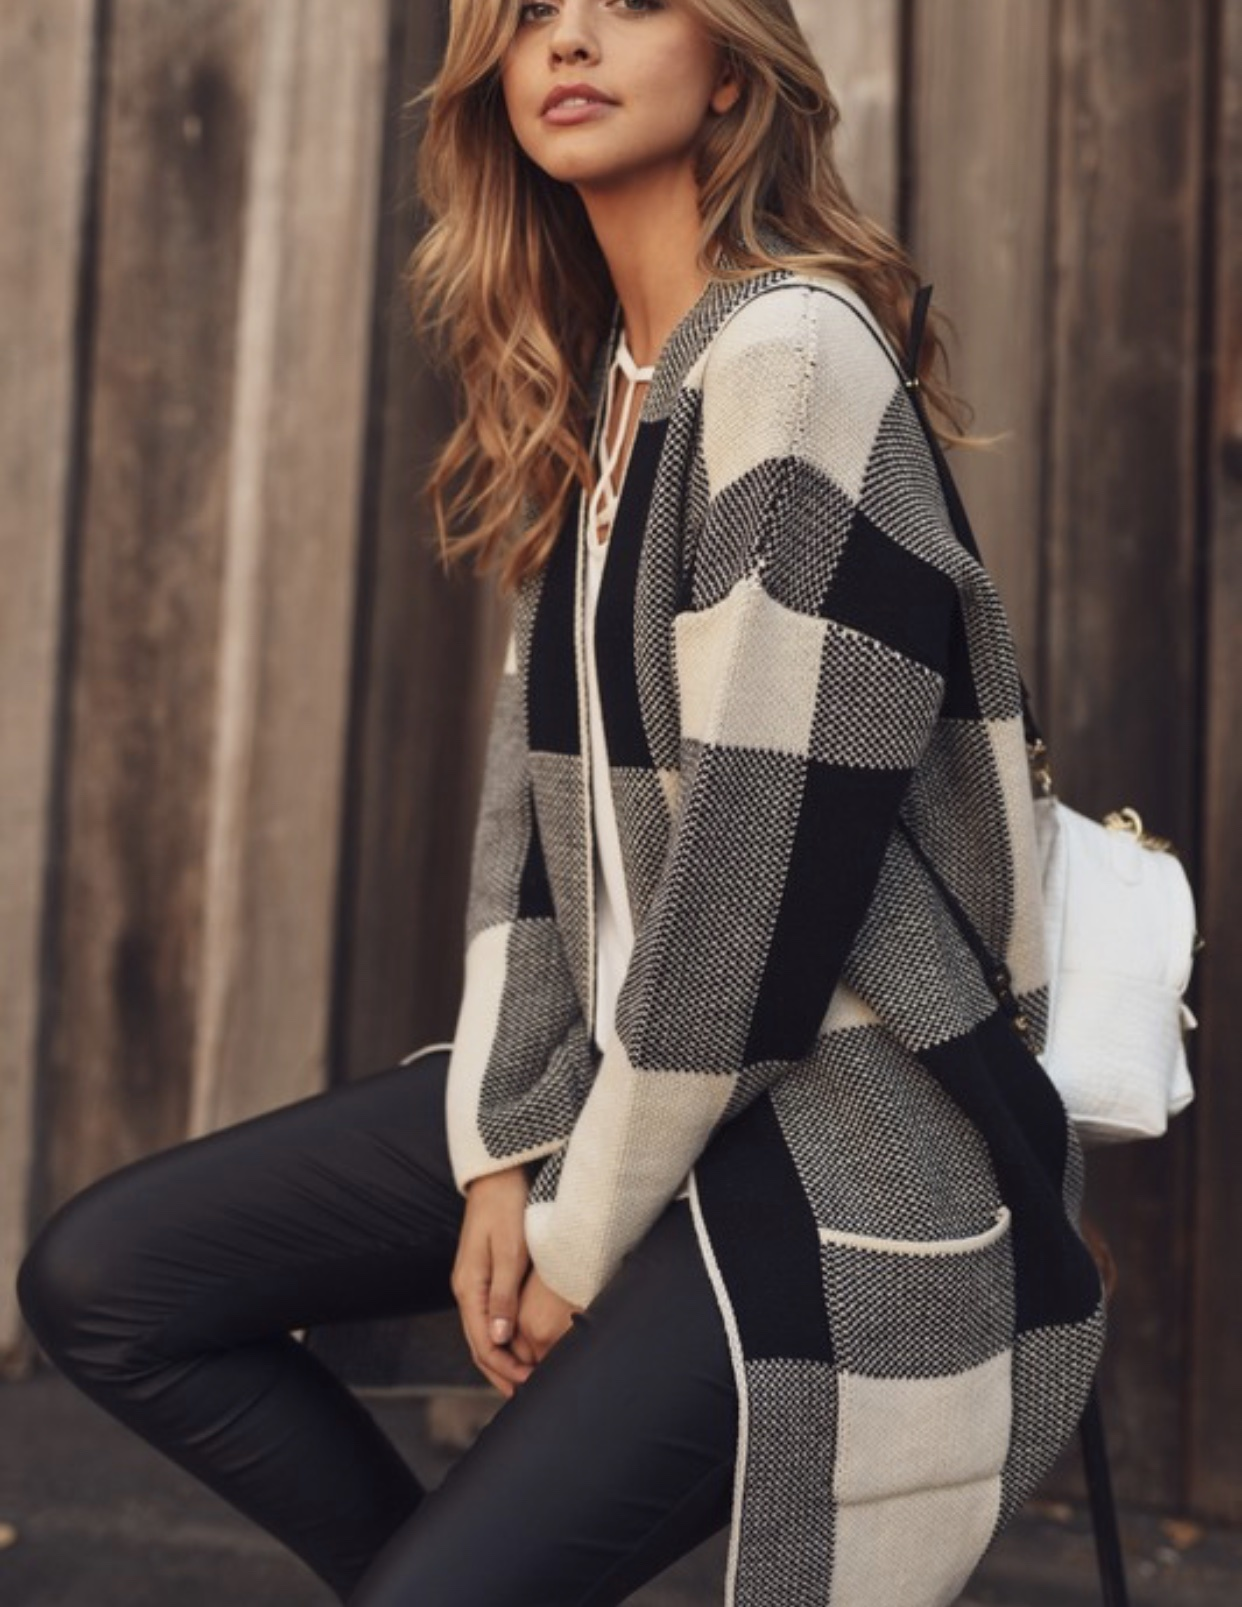 Black/Cream Knit Cardigan